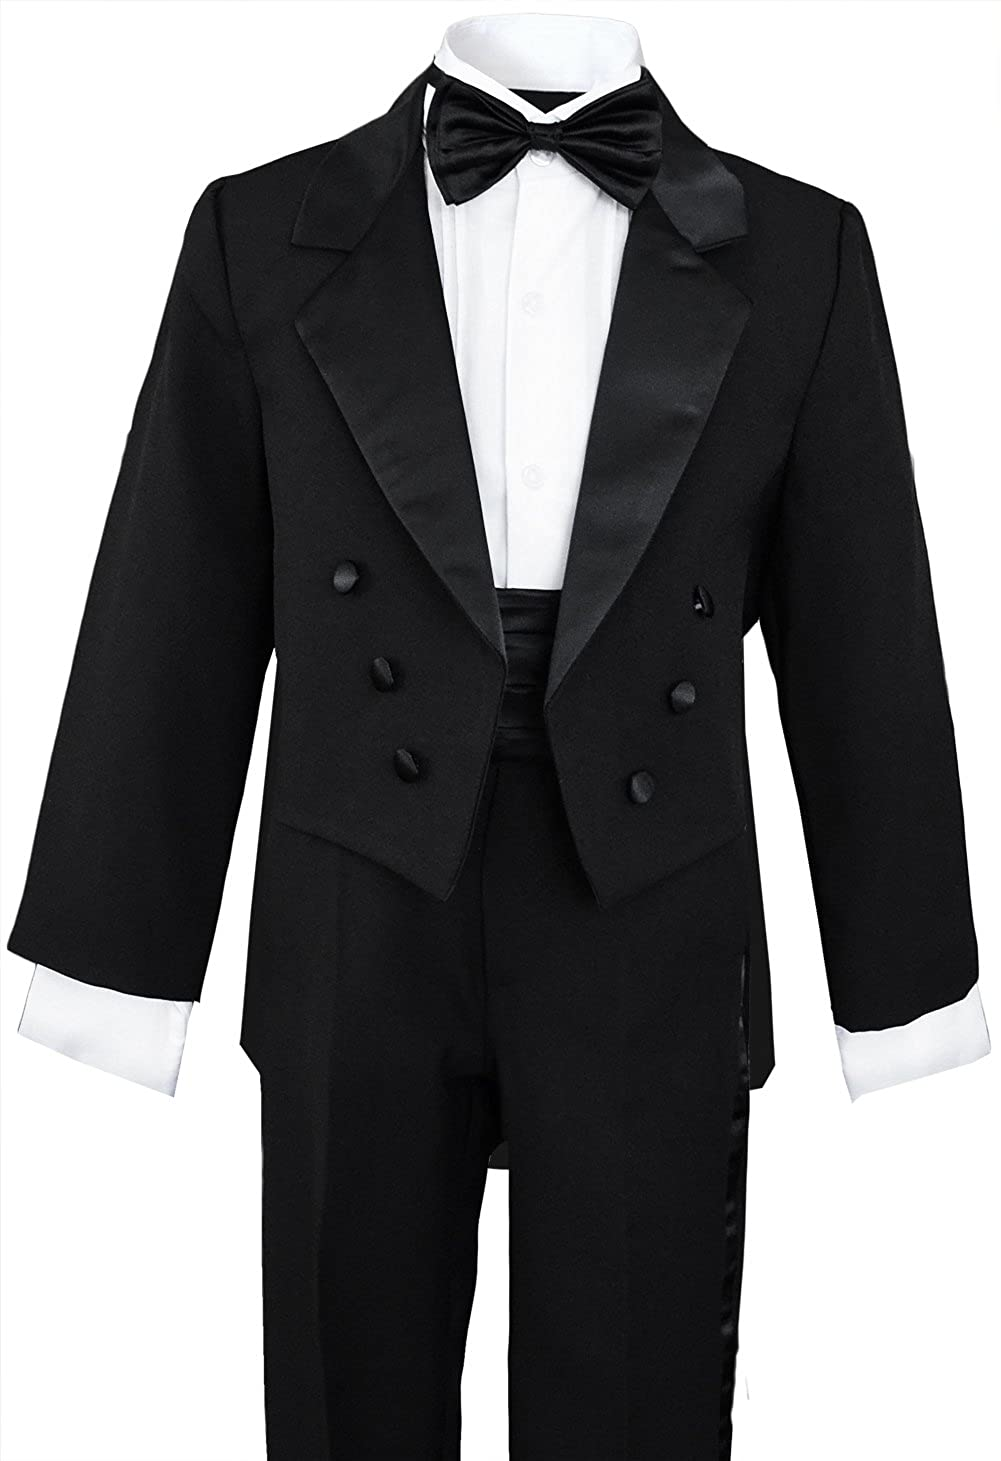 d51b0c6f0eb Boys Black Tuxedo with Tail Outfit Set: Amazon.ca: Clothing & Accessories